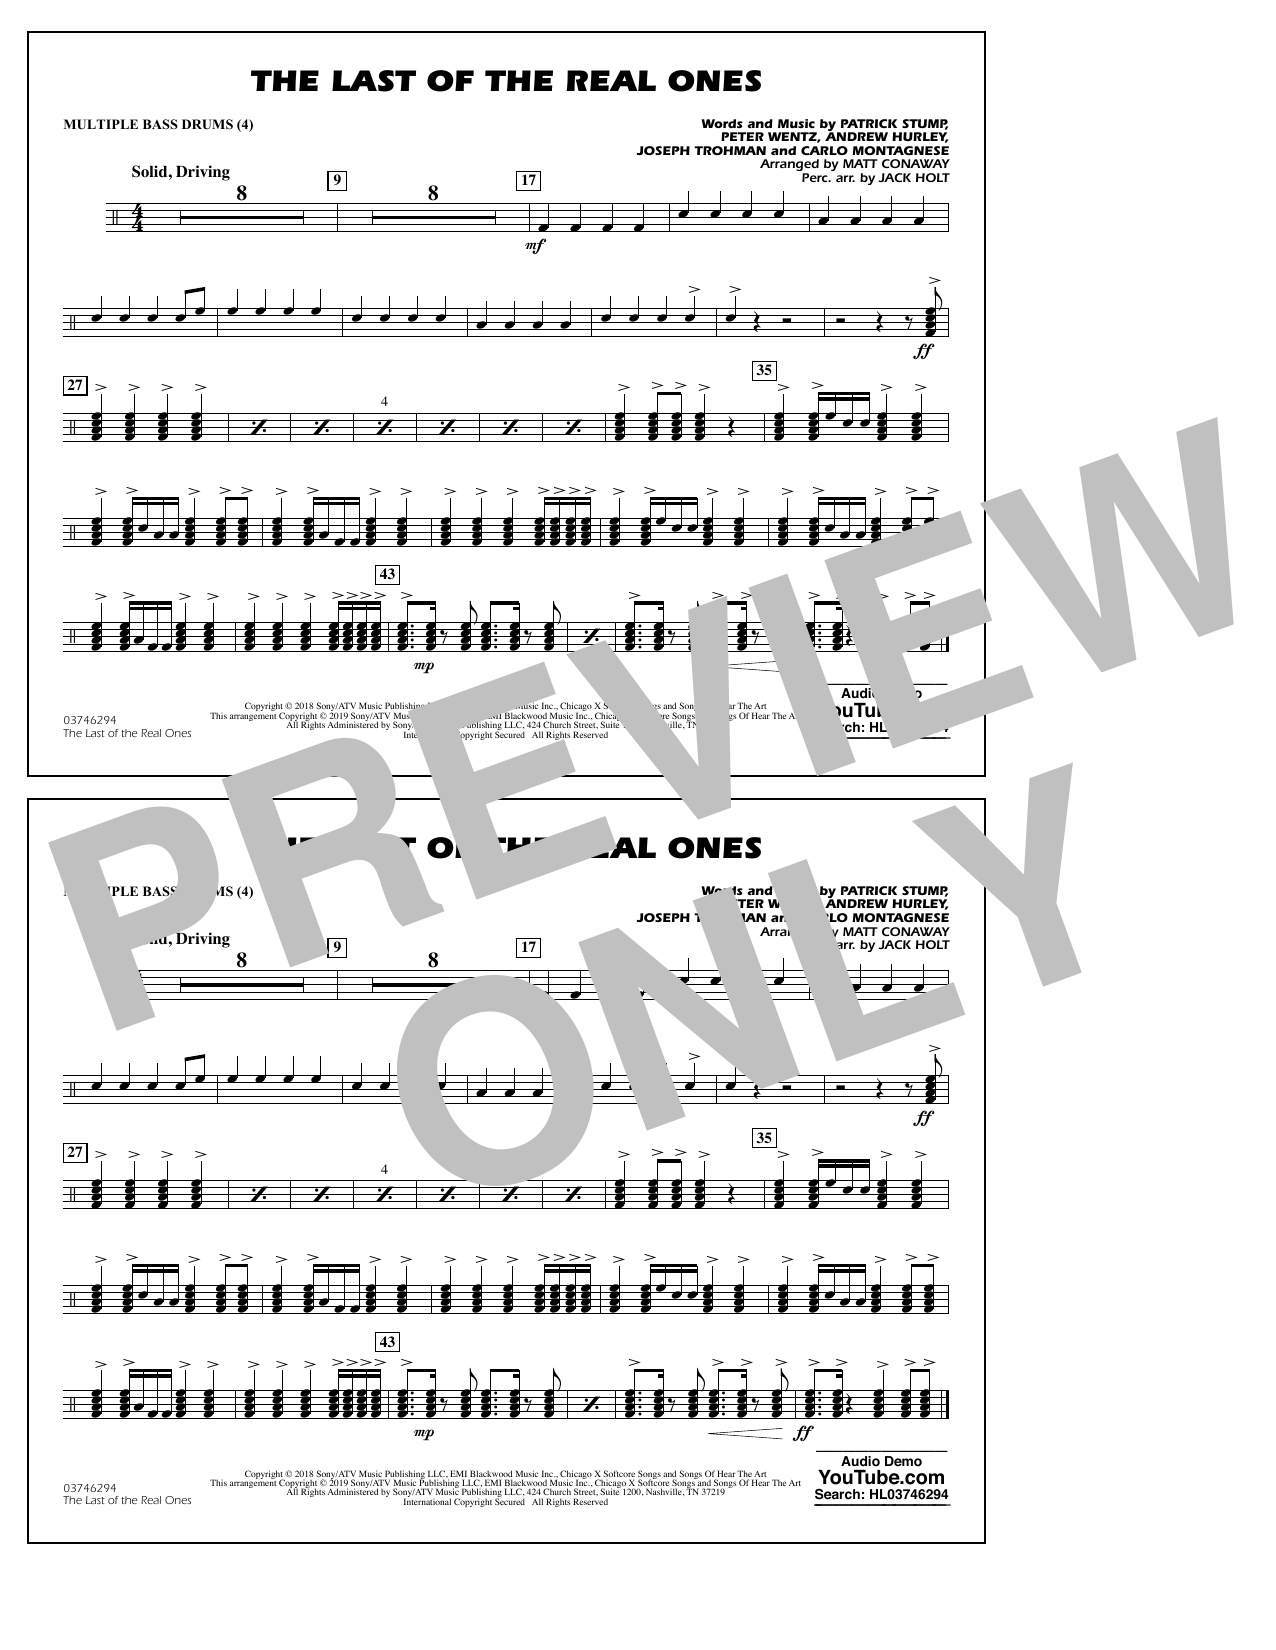 Last of the Real Ones (arr. Matt Conaway) - Multiple Bass Drums (Marching Band)